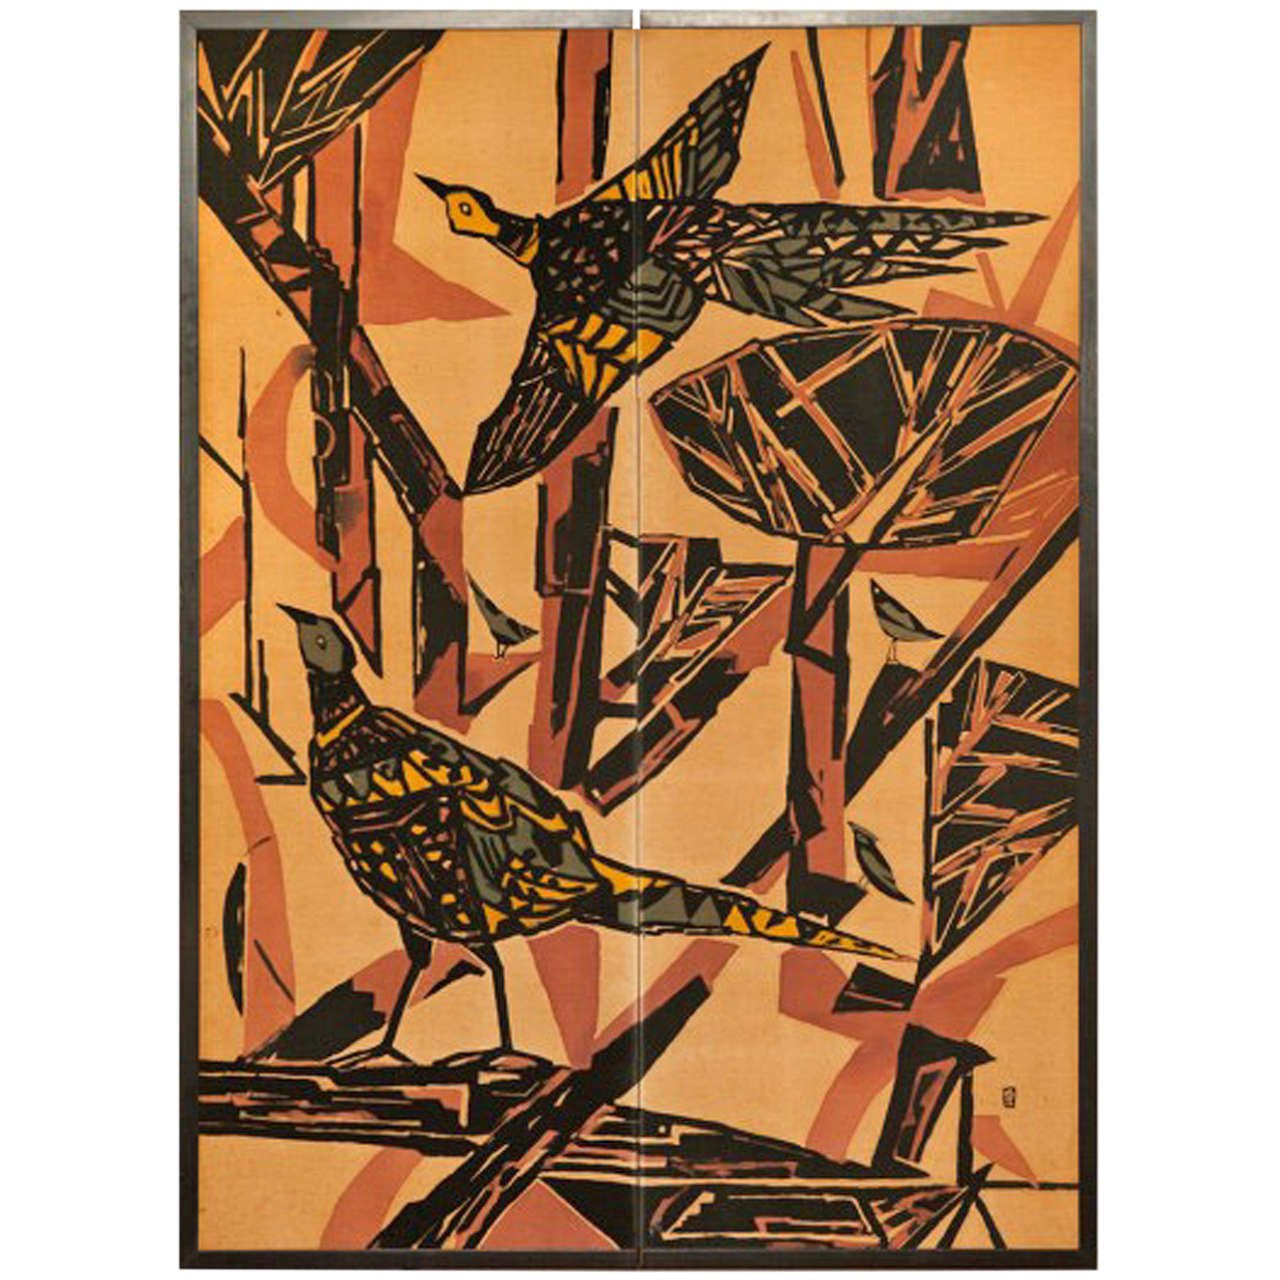 Japanese Two Panel Screen: Pheasants in an Abstract Landscape